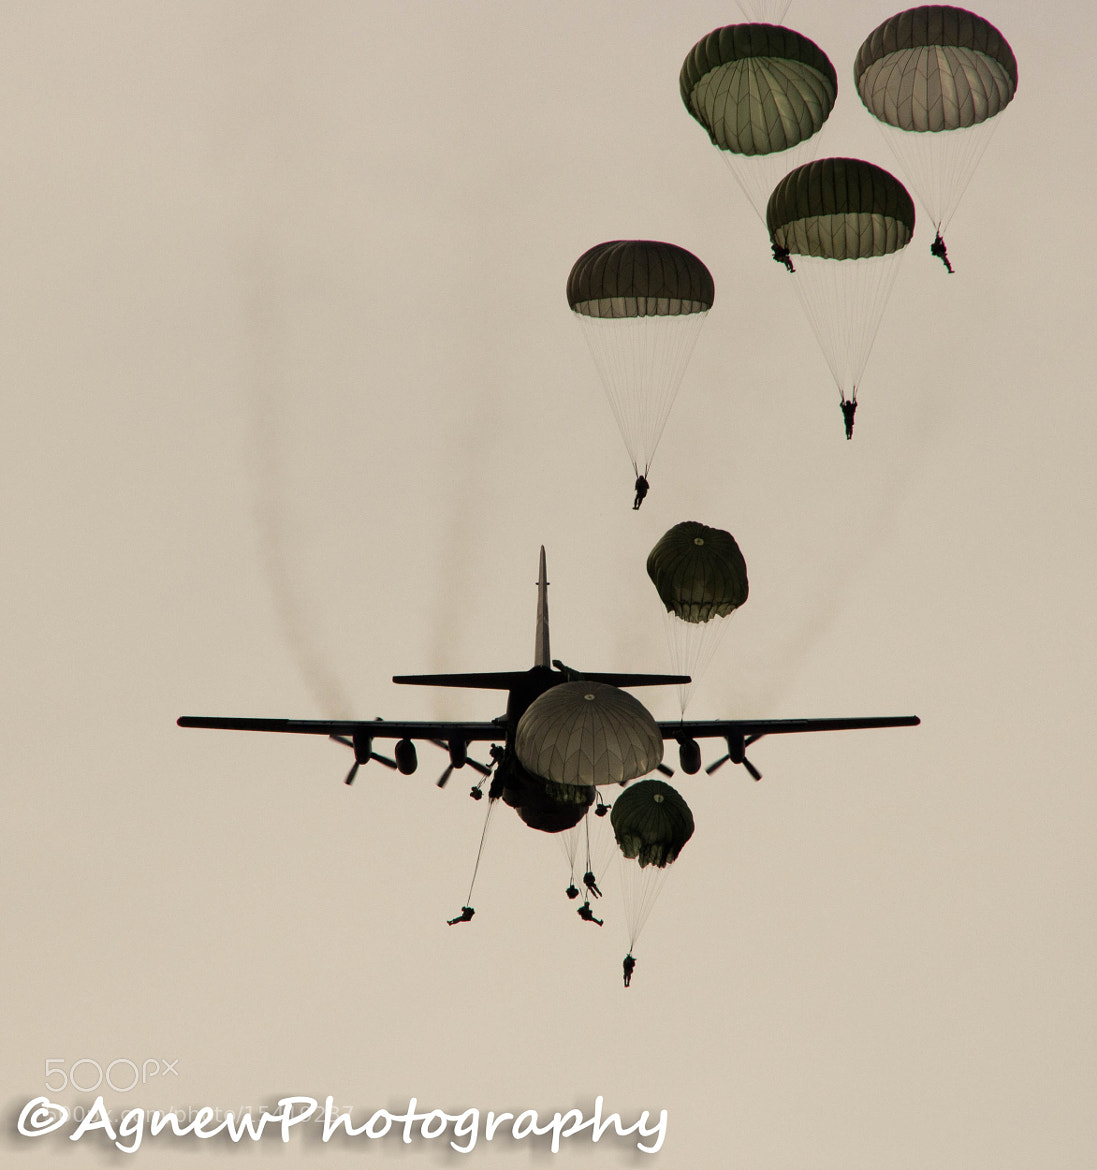 Photograph Jumping Paratroopers by Daniel Agnew on 500px